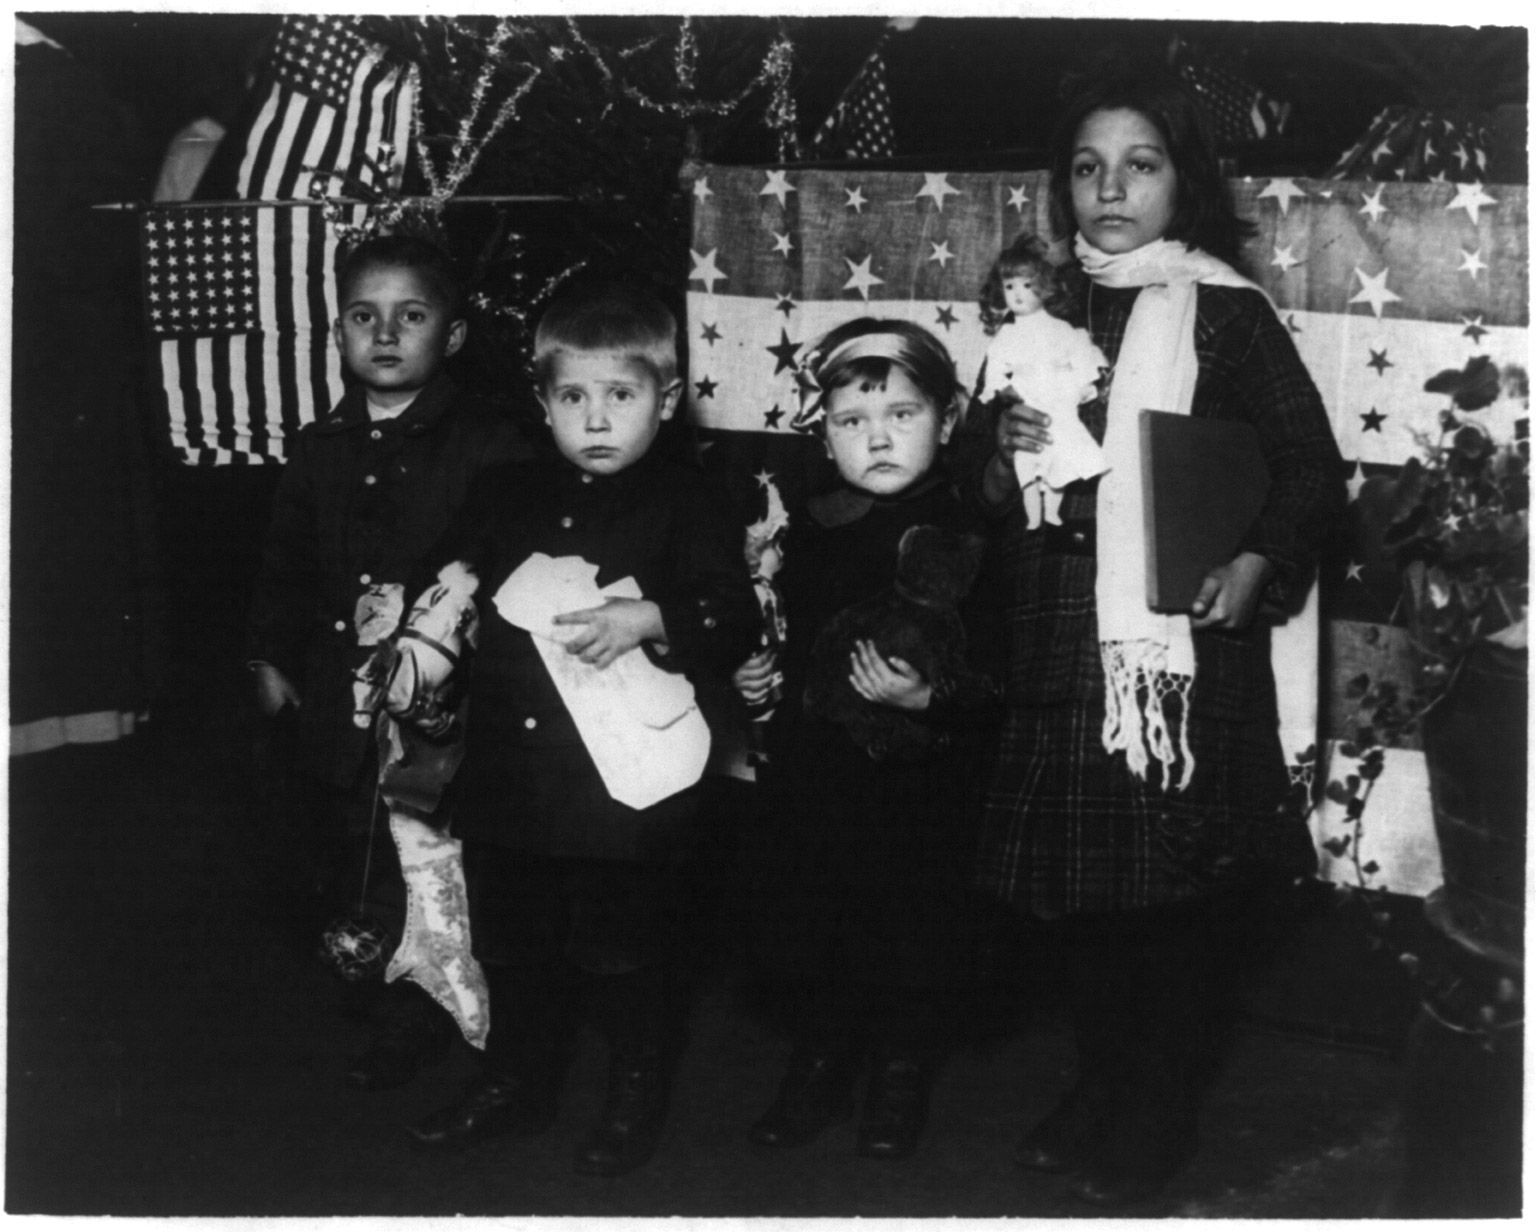 Four immigrant children posed for their first Christmas in America at Ellis Island, circa 1918.